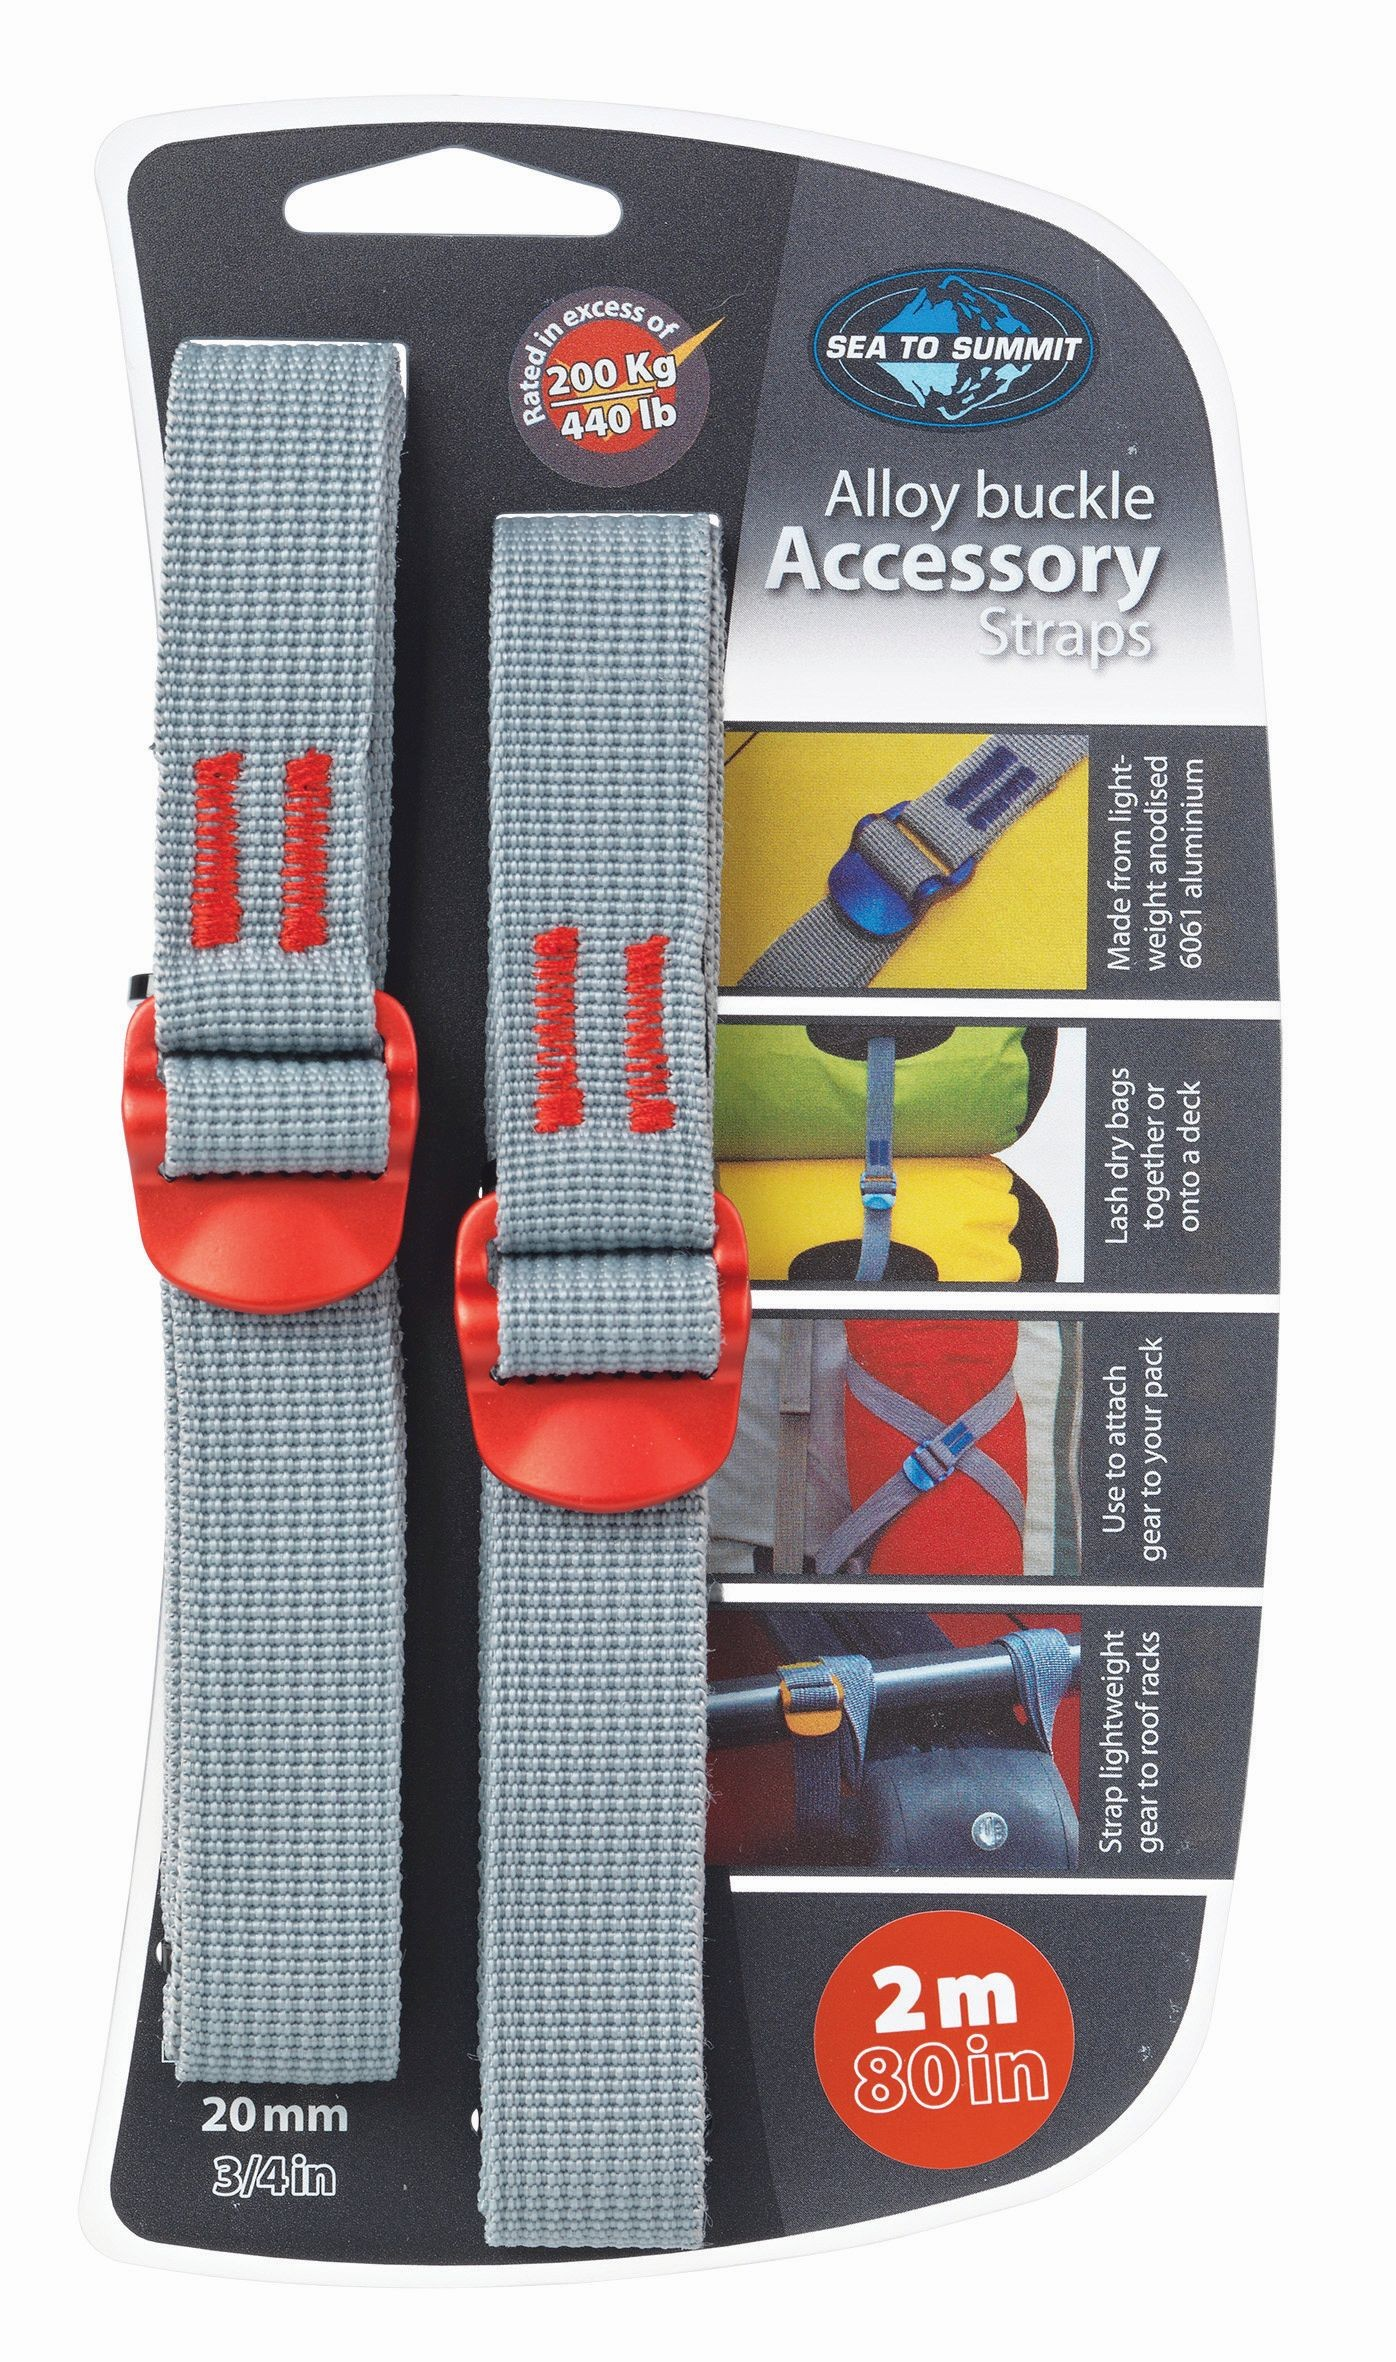 Sea To Summit 20mm Tie Down Accessory Strap 2 m